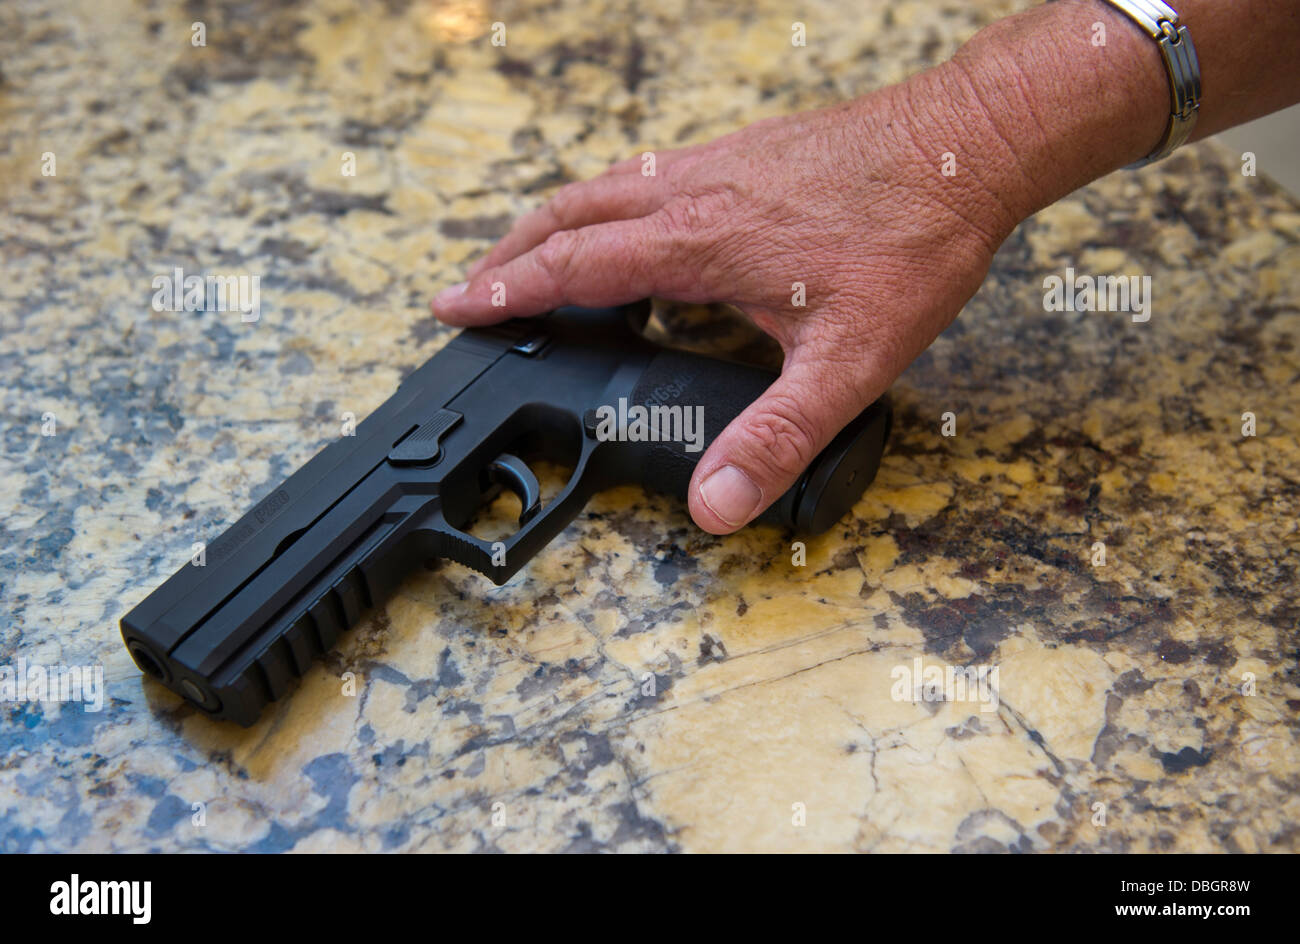 A Sig Sauer P250 gun being kept as a protection against intruders at a private home, Santa Ana, California - Stock Image